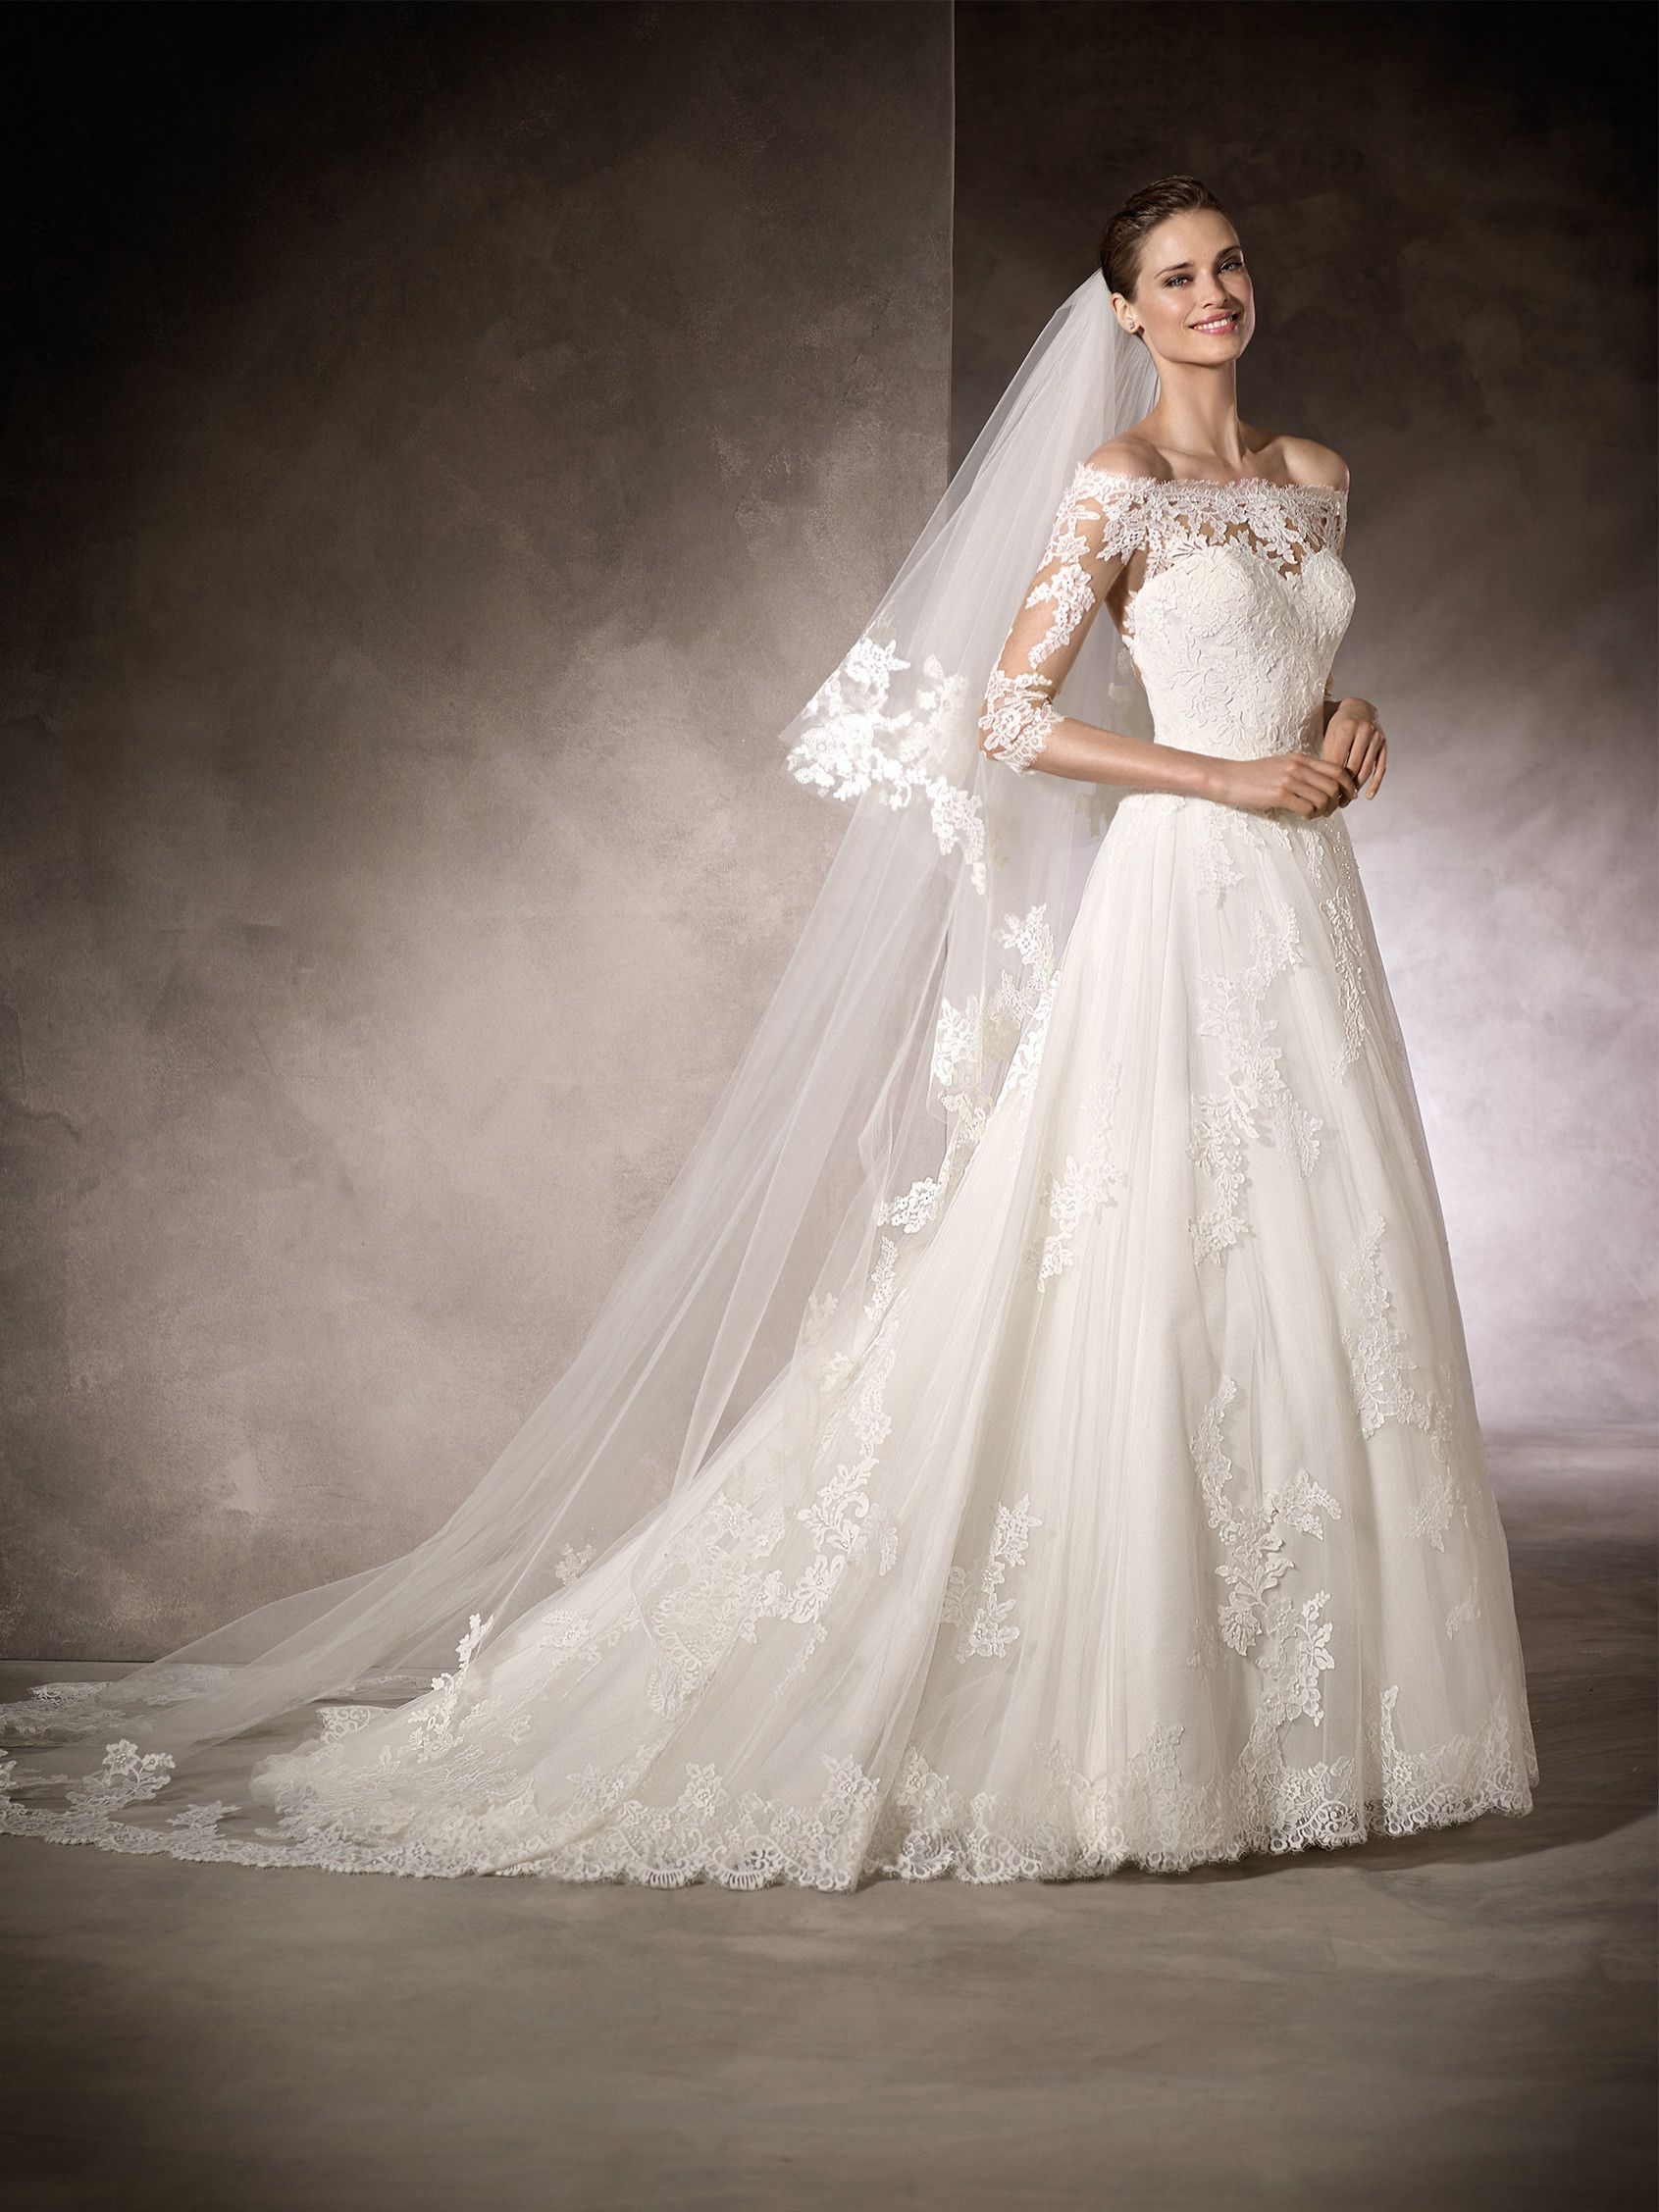 Pin by Jenny Schmitt on mariage  Pronovias wedding dress, Wedding